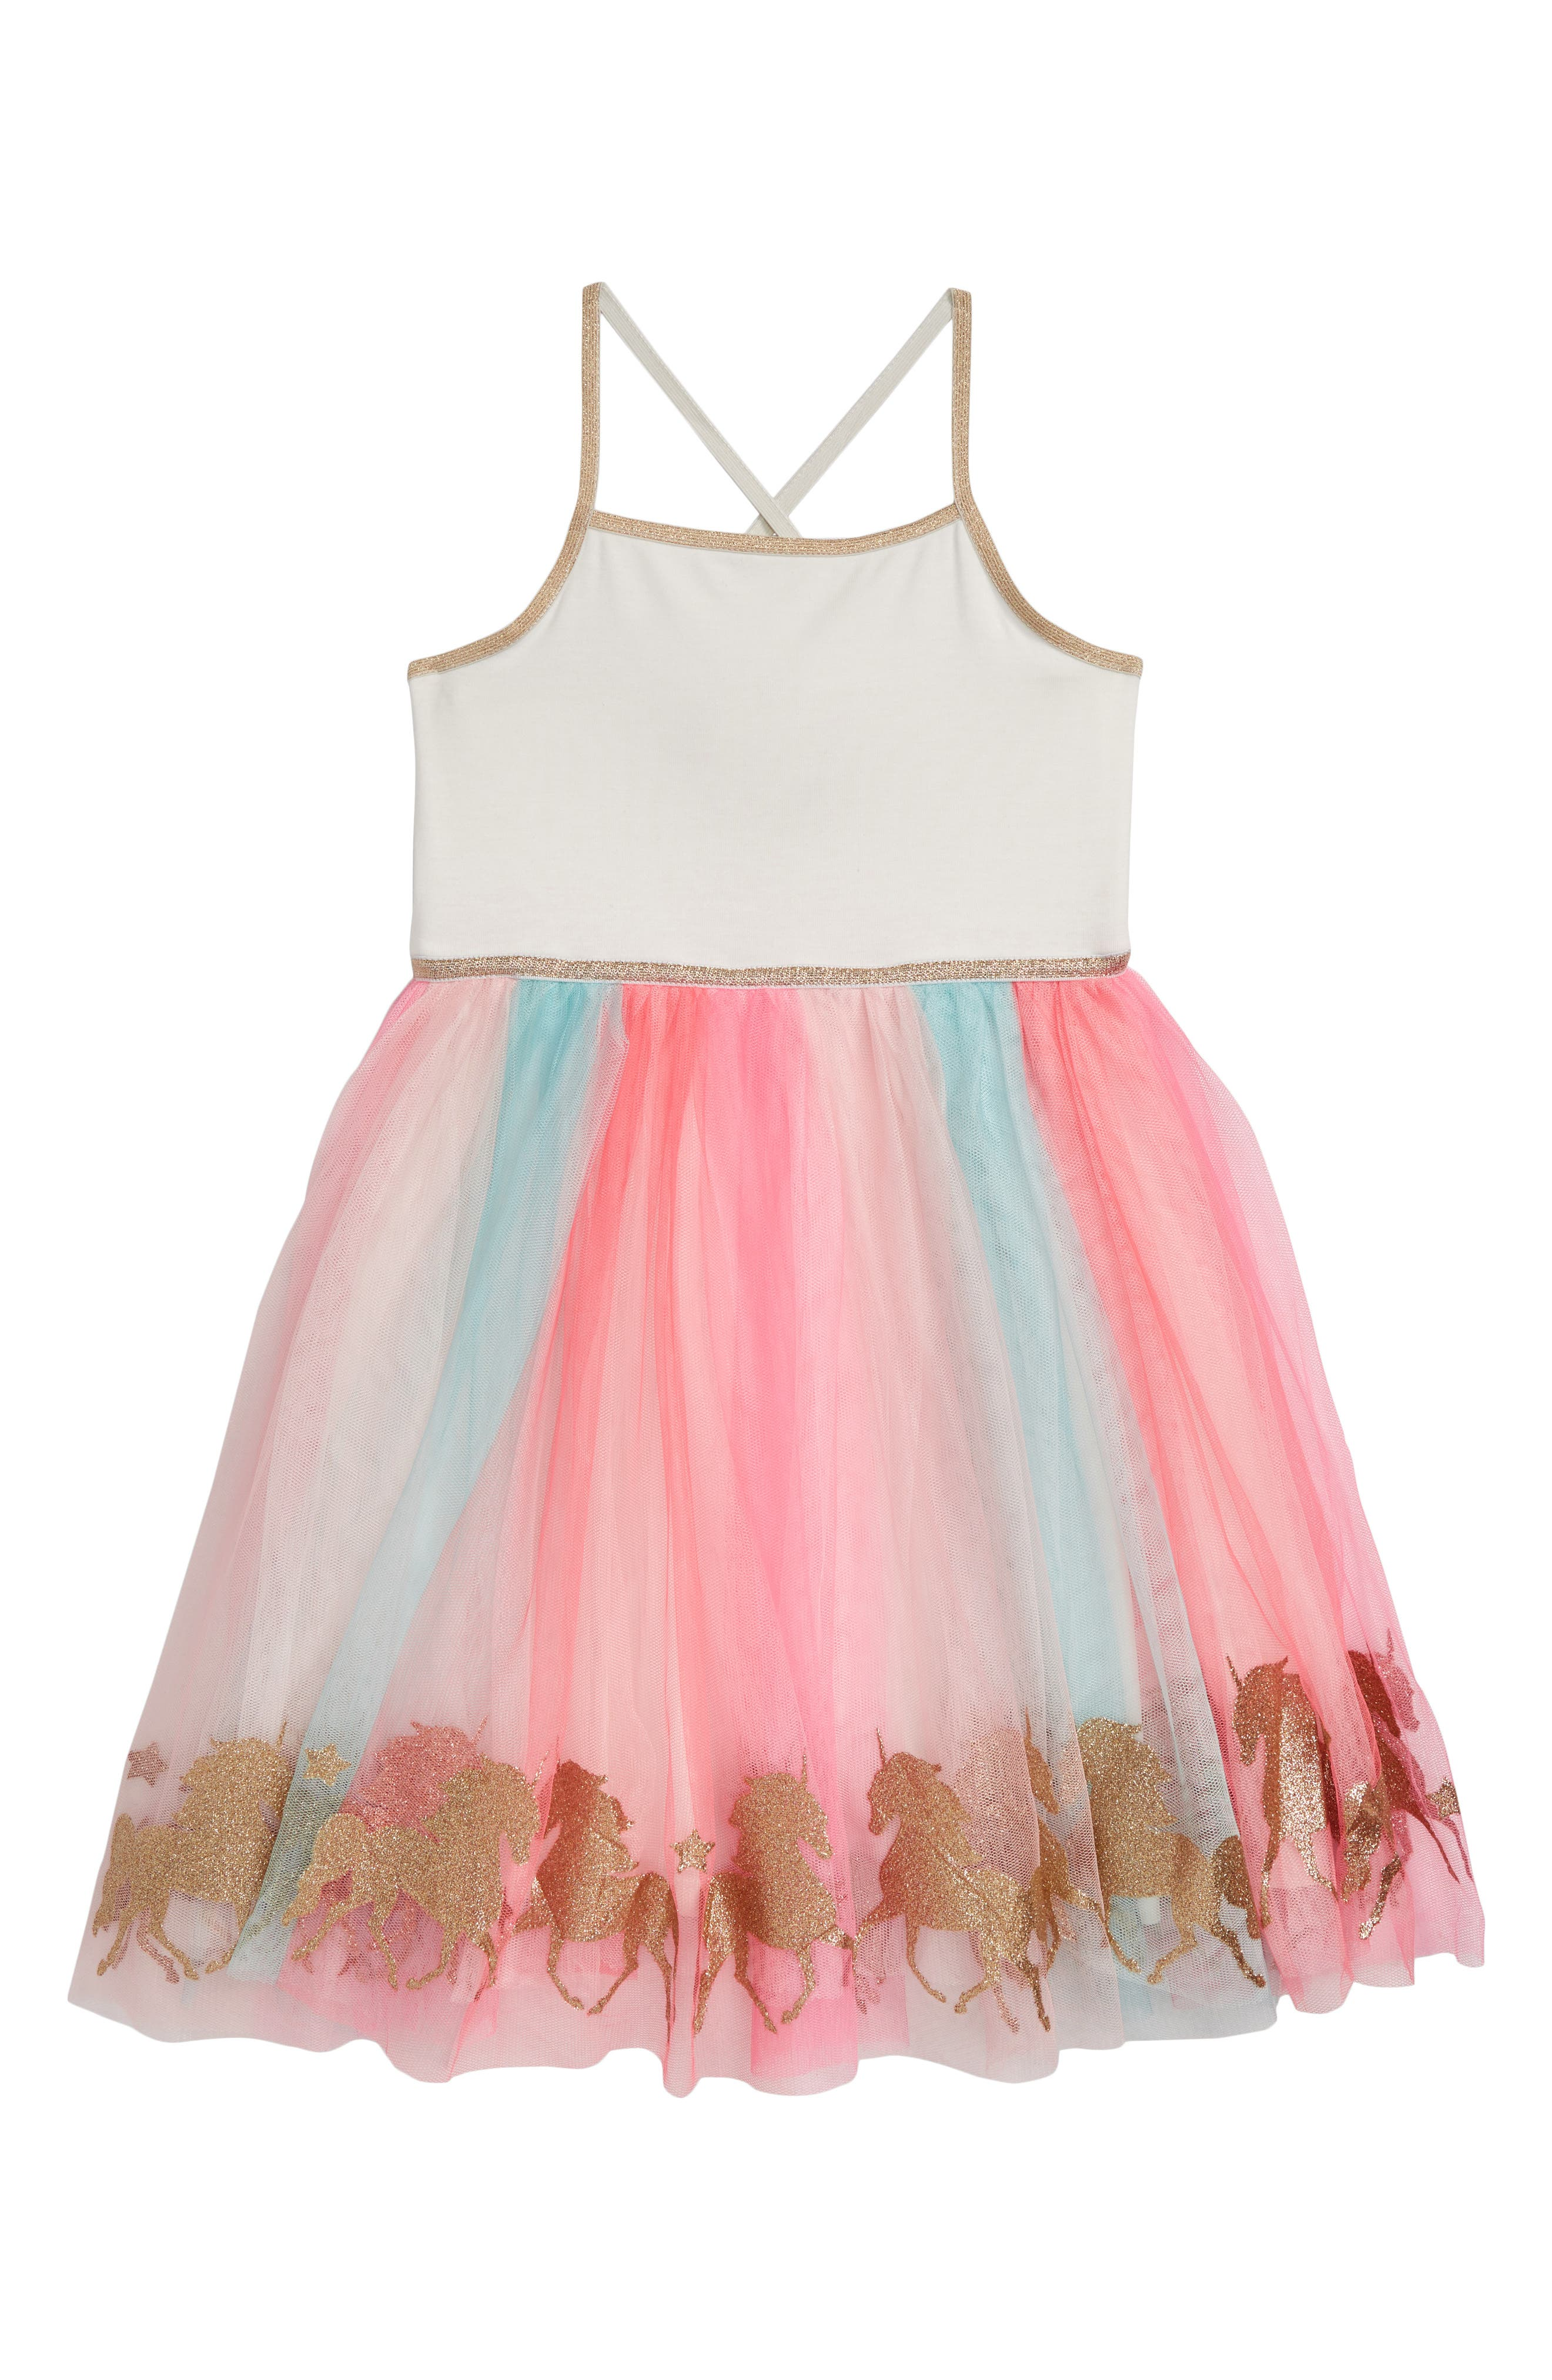 NEW Zunie Girls Denim Sleeveless Pink Tutu Dress with Brown Belt DENIM//BLUSH